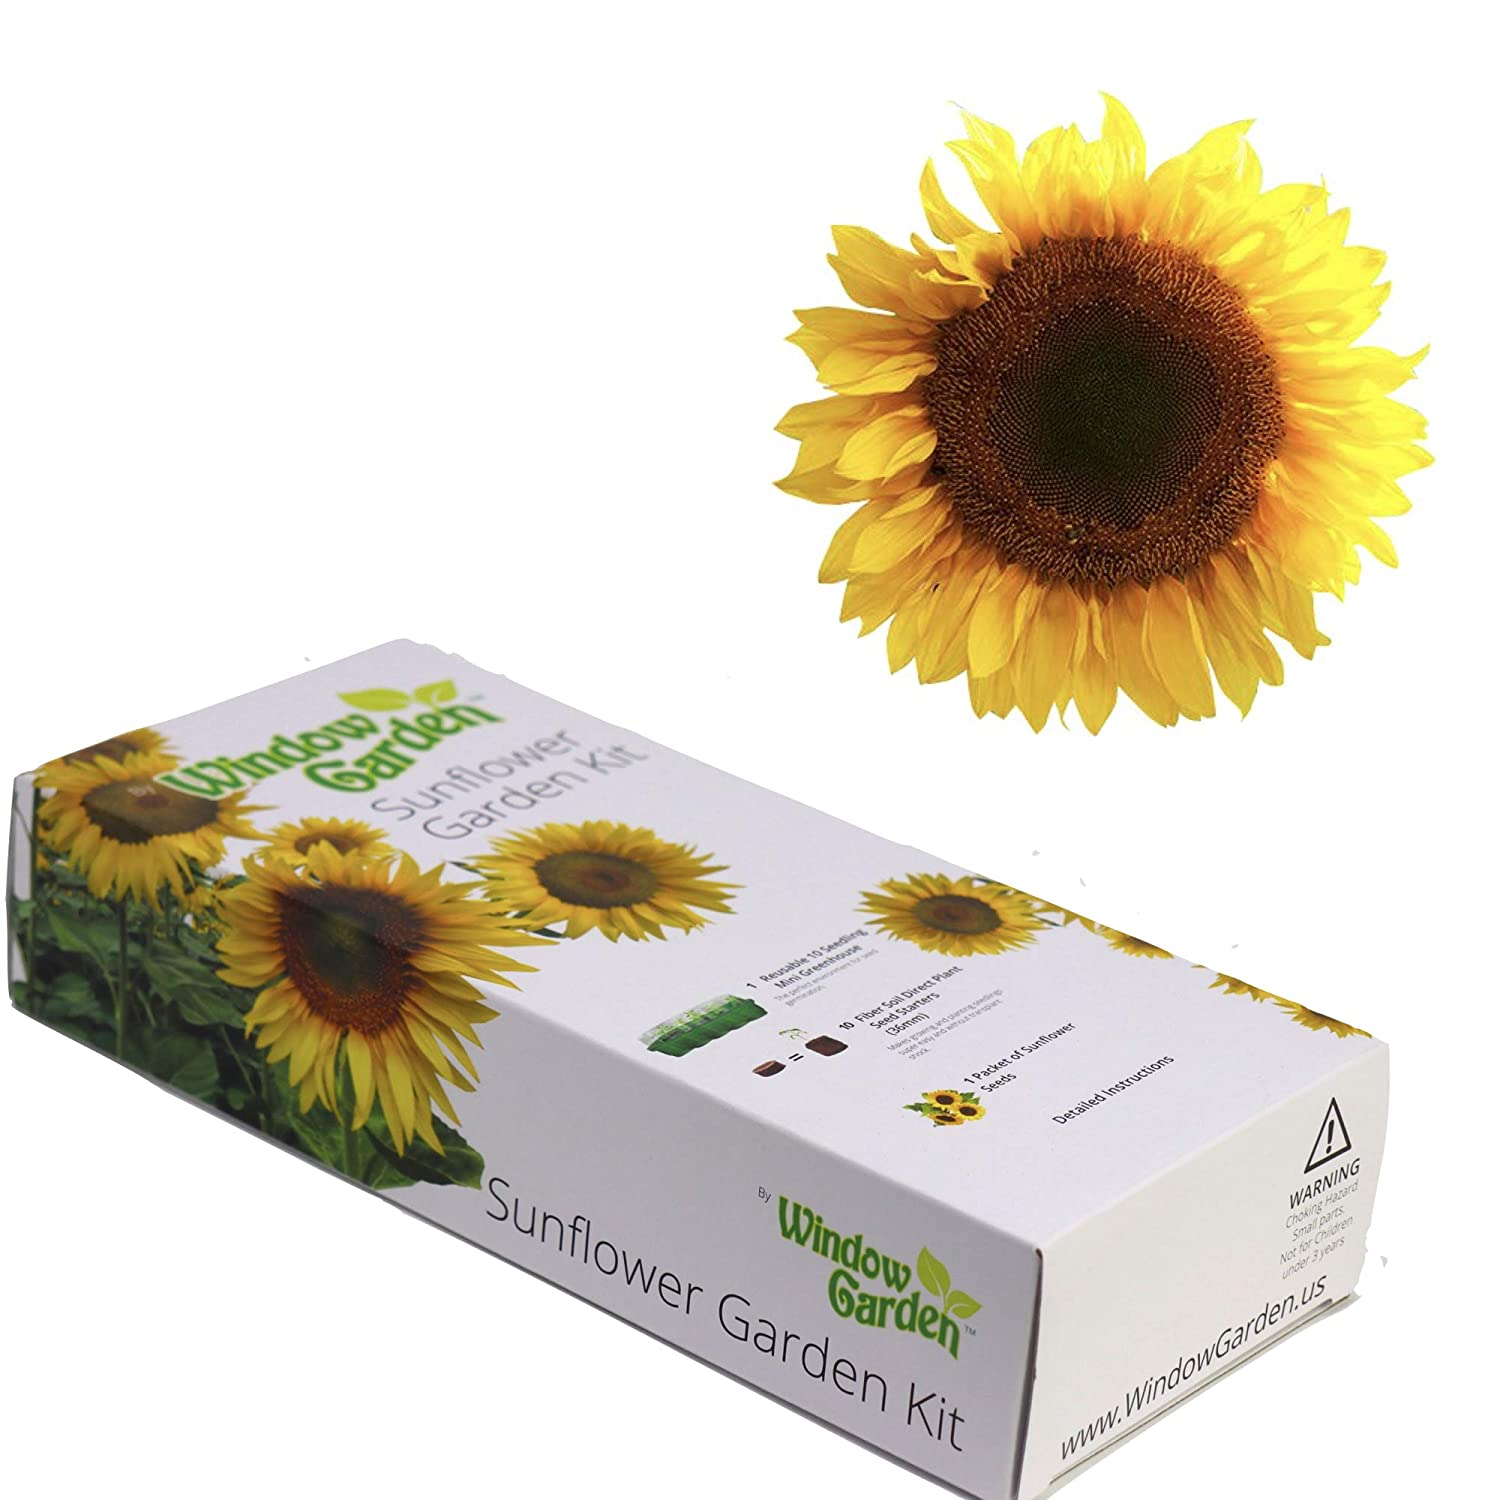 Window Garden - Flower Starter Kit - Grow Your Own Beauty. Germinate Seeds on Your Windowsill Then Move to Patio Planter or Landscape. Mini Greenhouse System Make's it Foolproof, Easy and Fun.